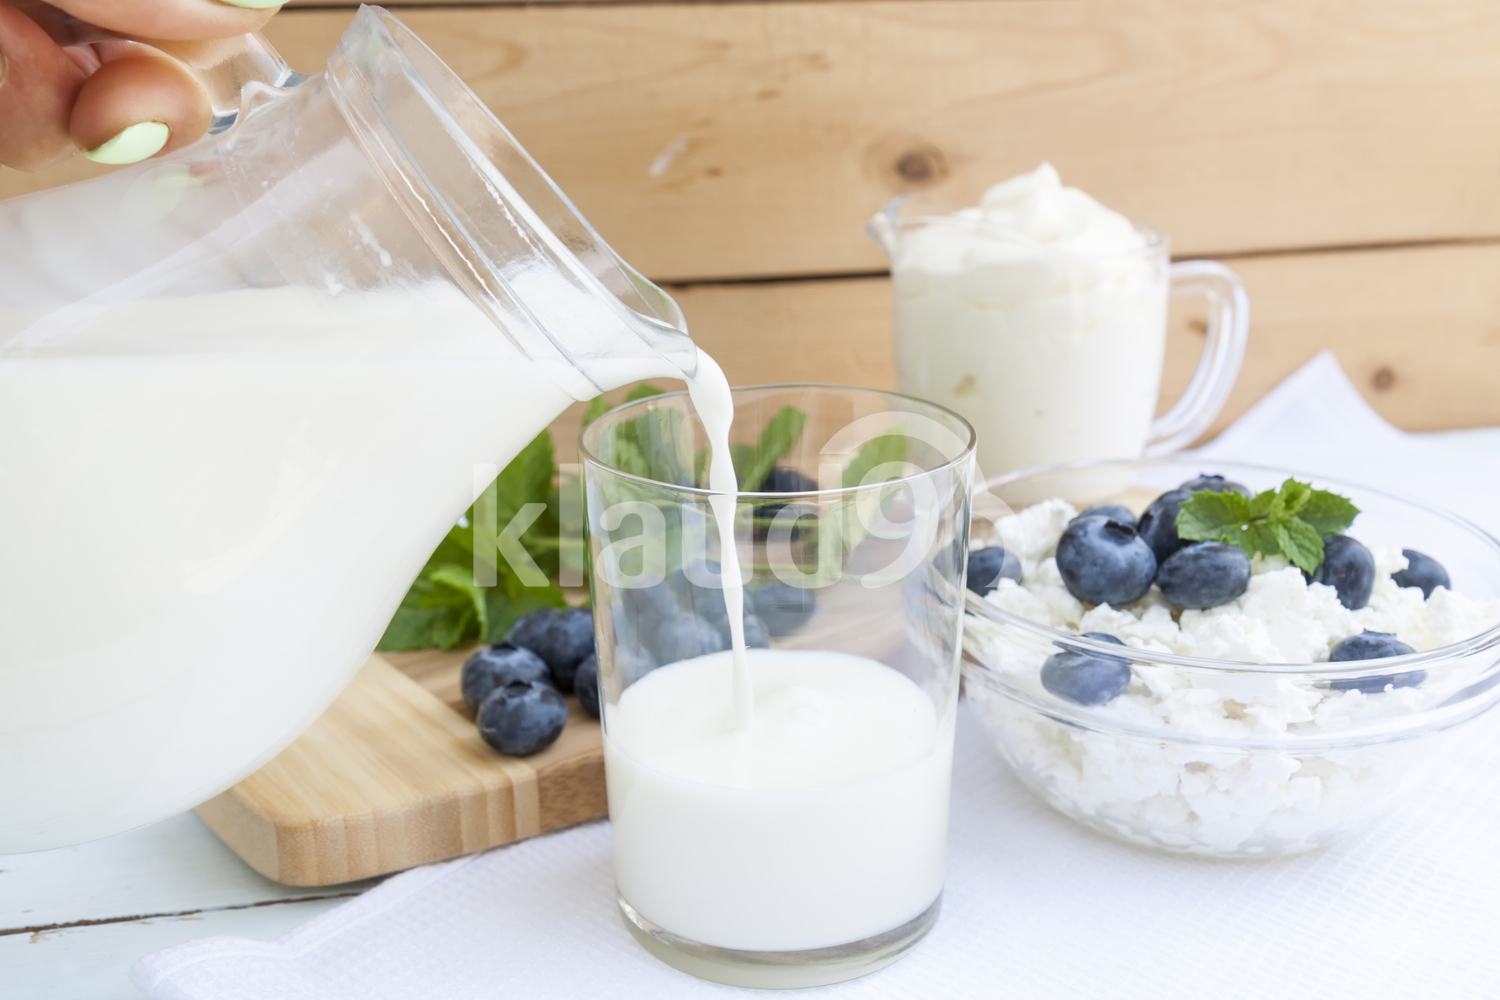 Pouring milk in the glass on the table